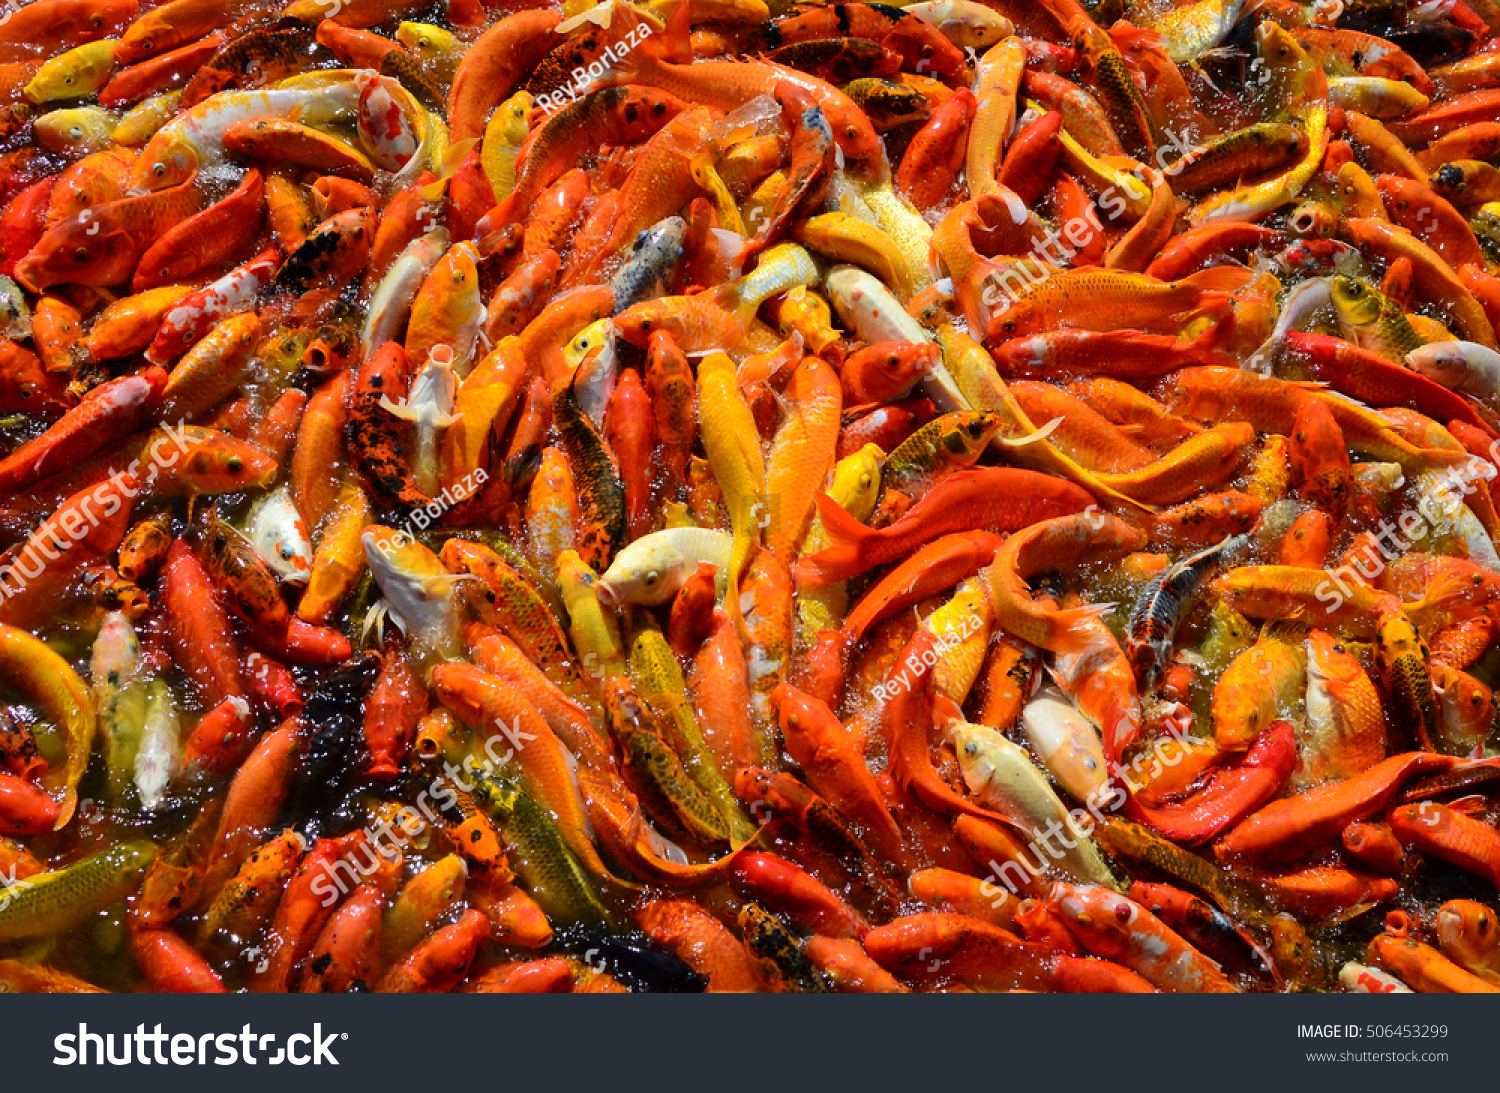 Busy Crowded Hungry Colorful Koi Fish Stock Photo (100% Legal ...